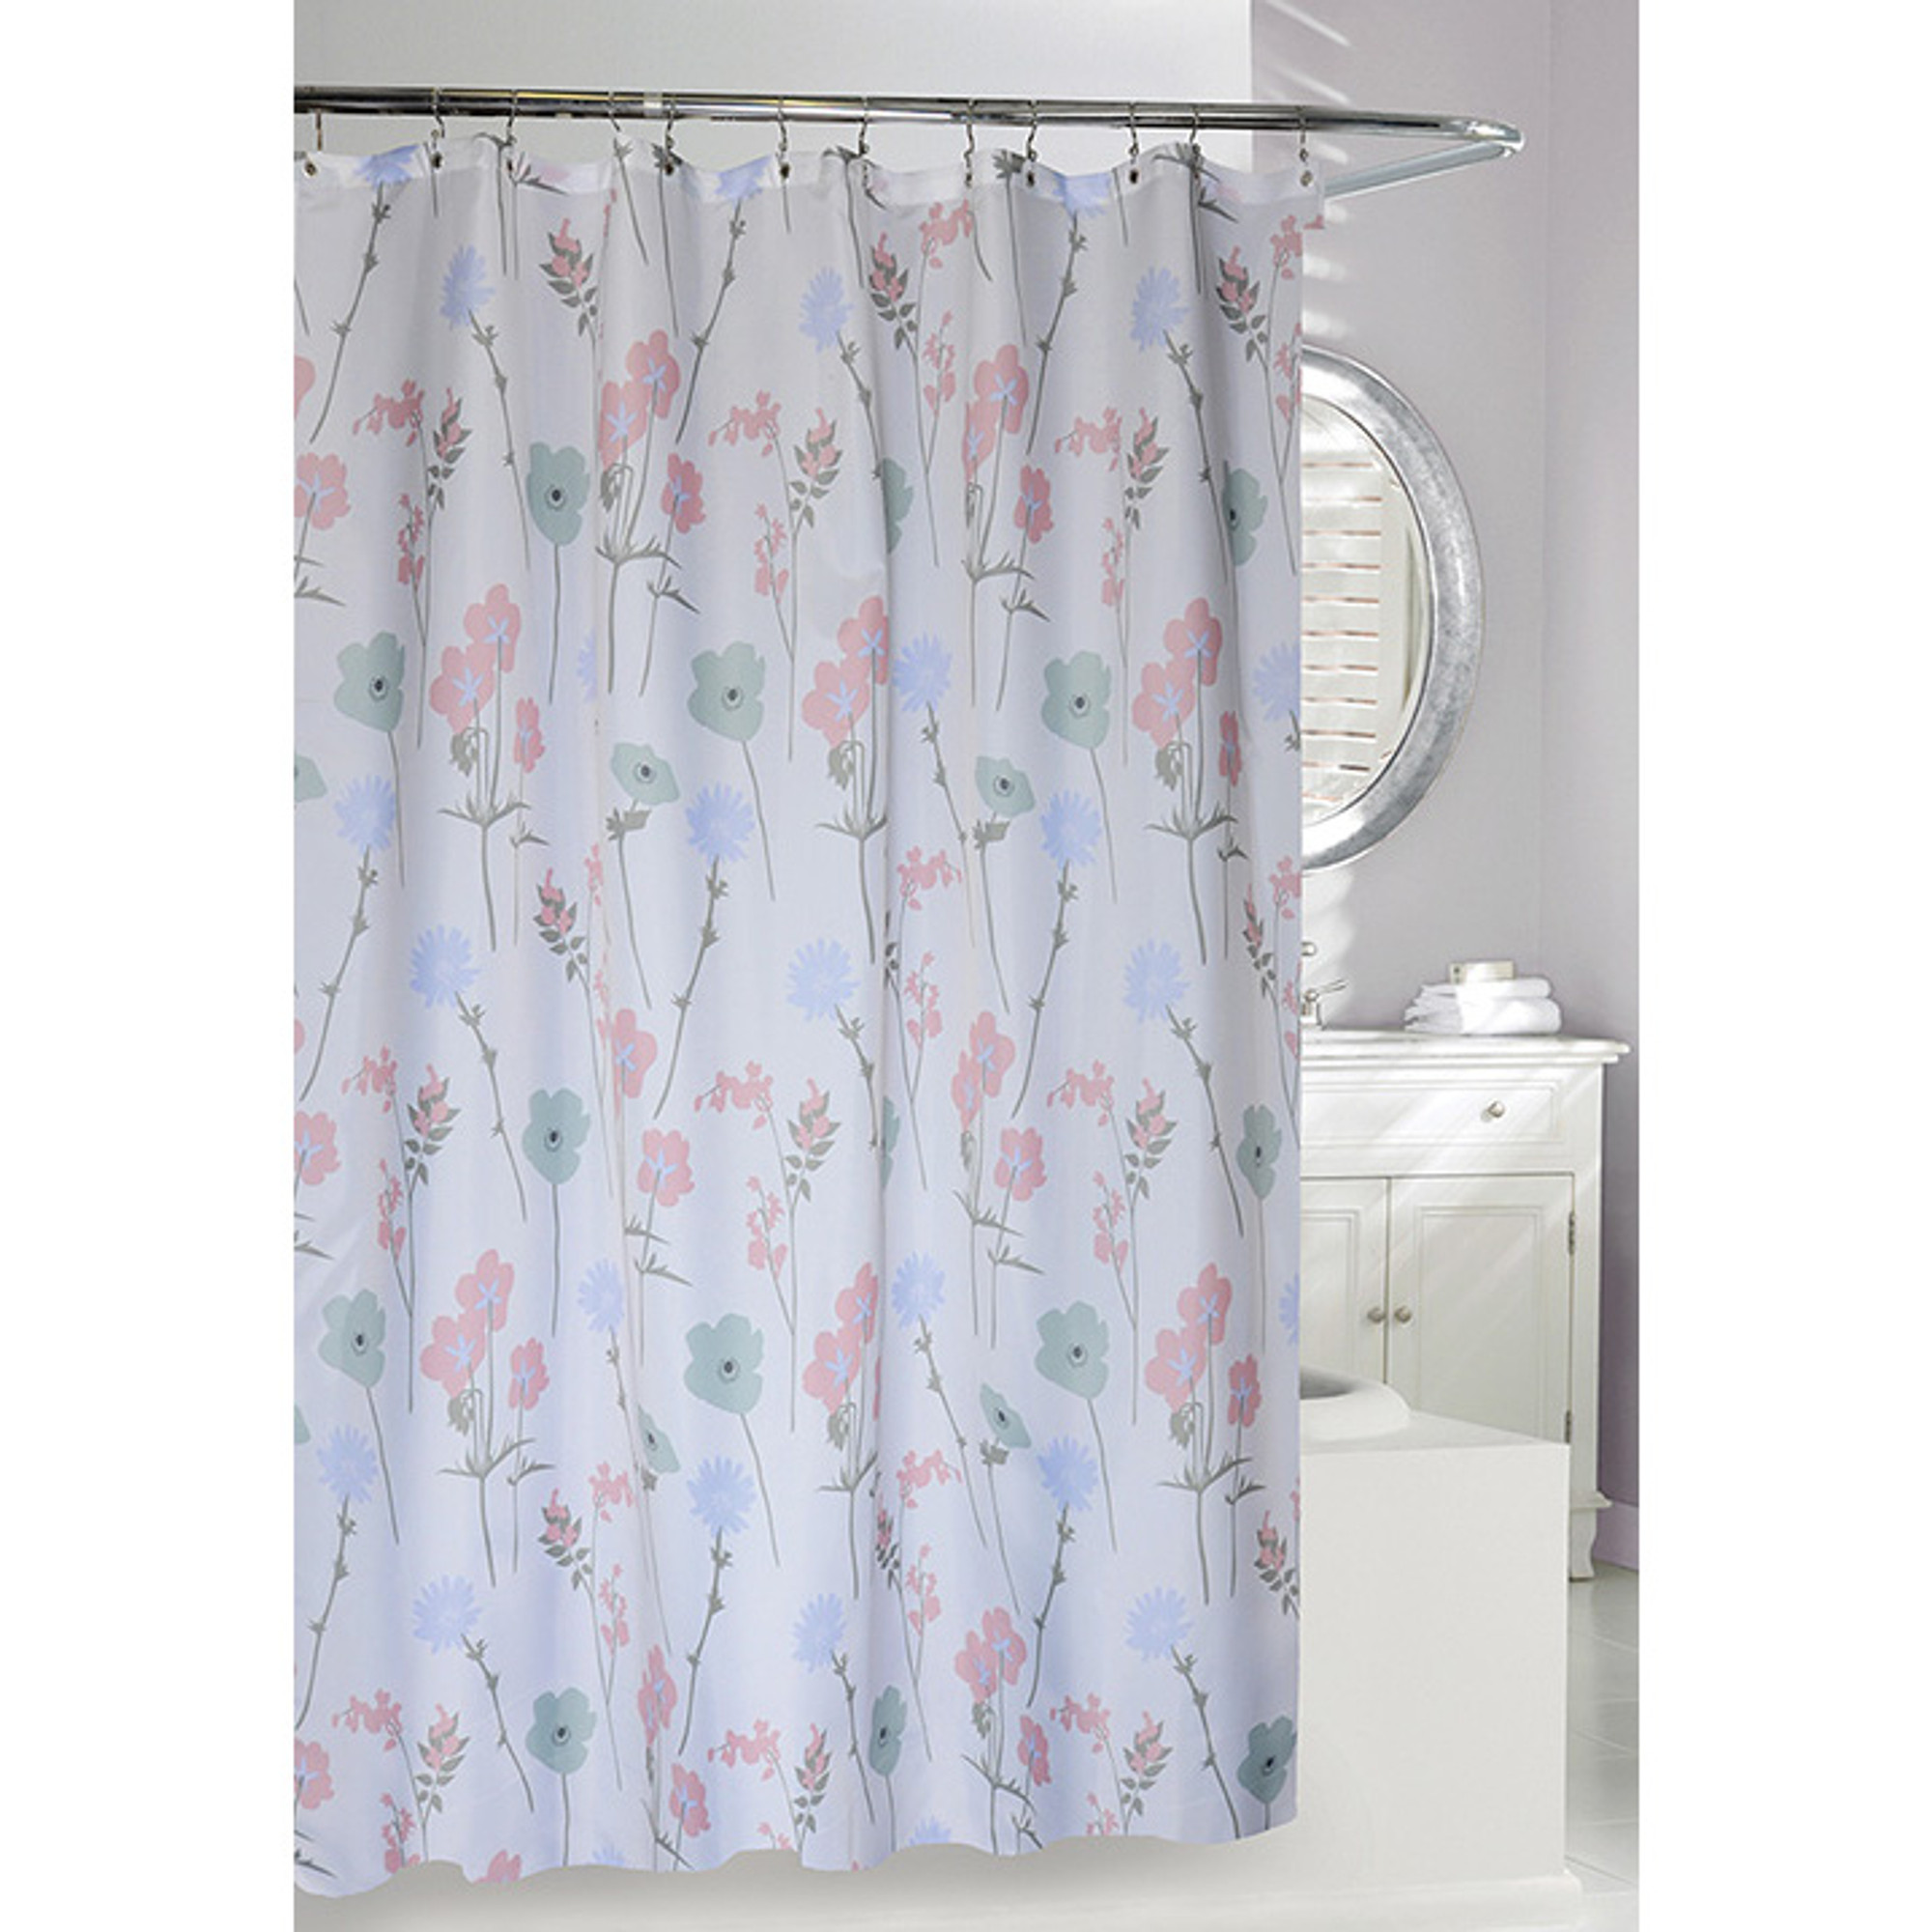 Pastel Floral Fabric Shower Curtain